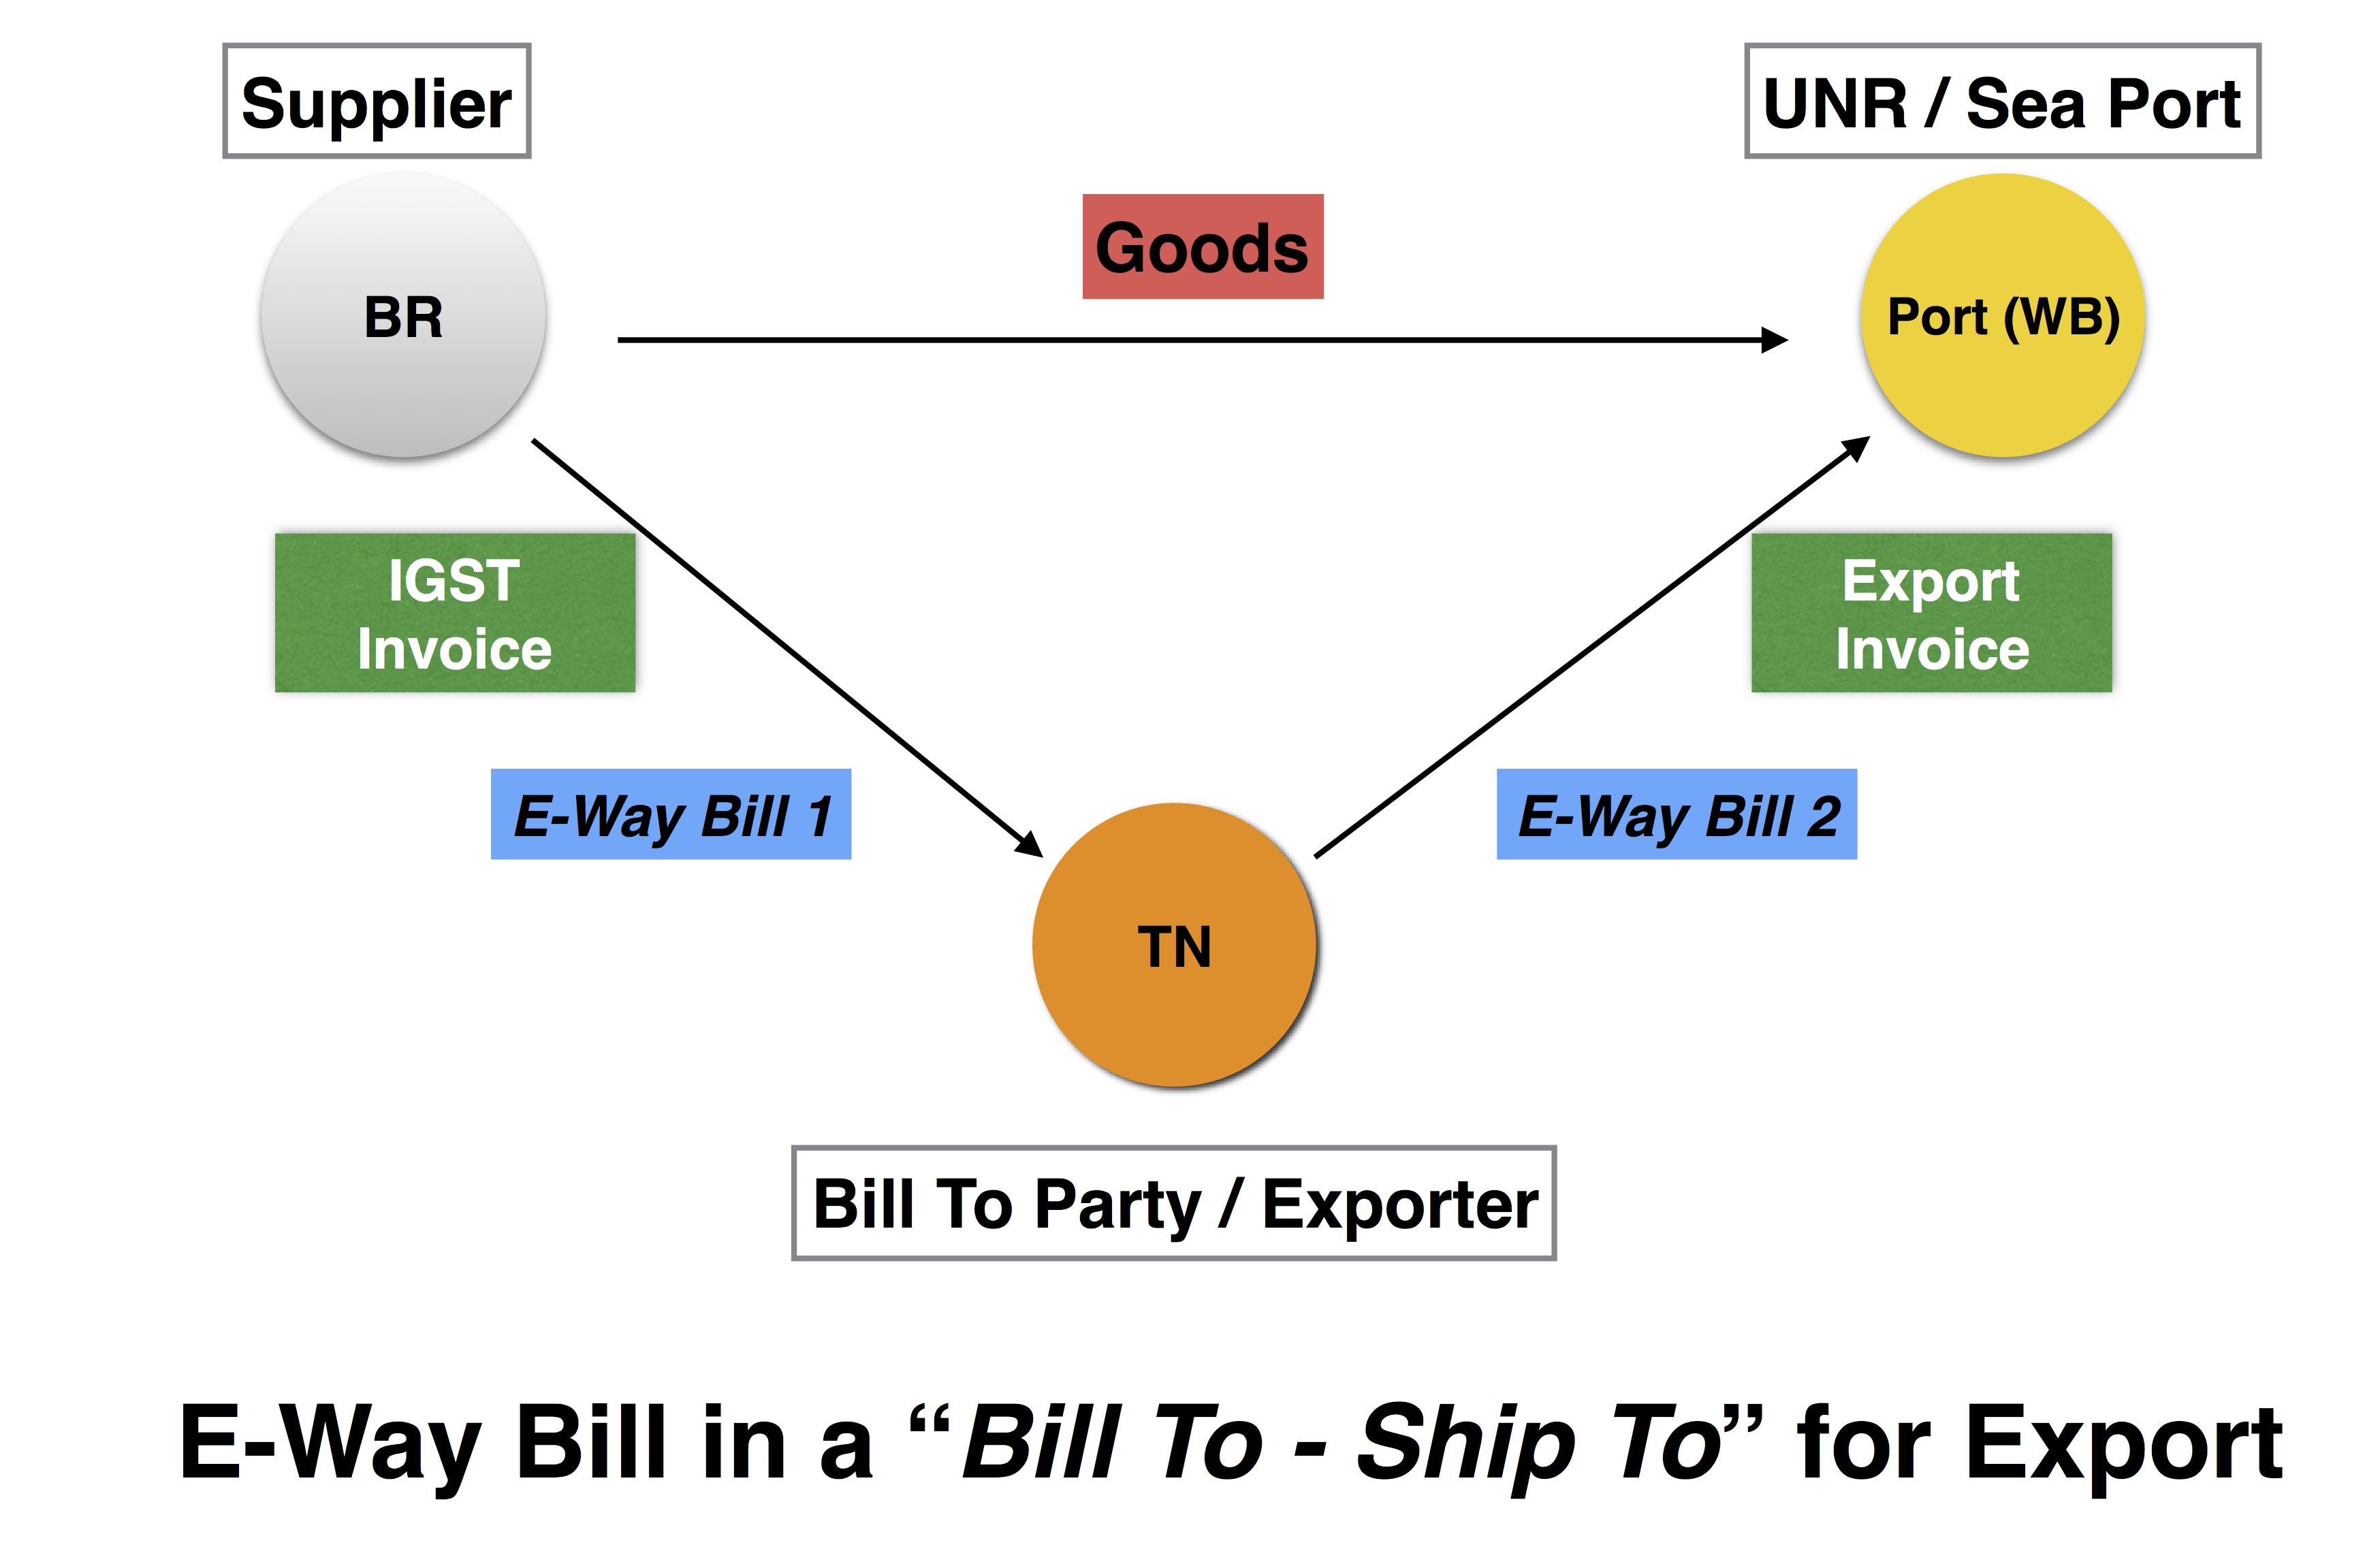 E-Way Bill in case of Bill To - Ship To for Export